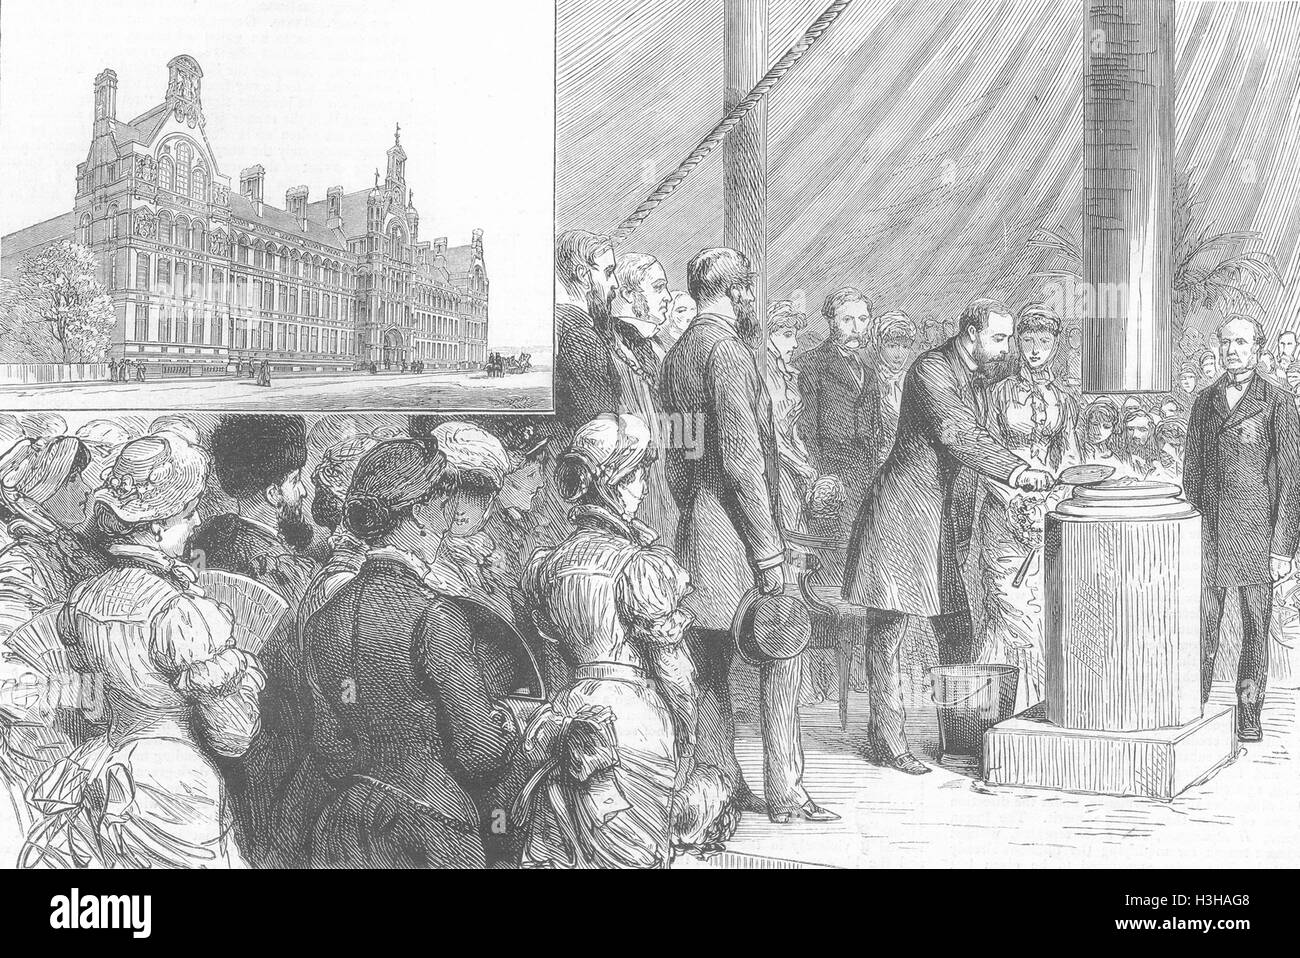 LONDON City & Guilds, South Kensington keystone 1881. The Graphic - Stock Image